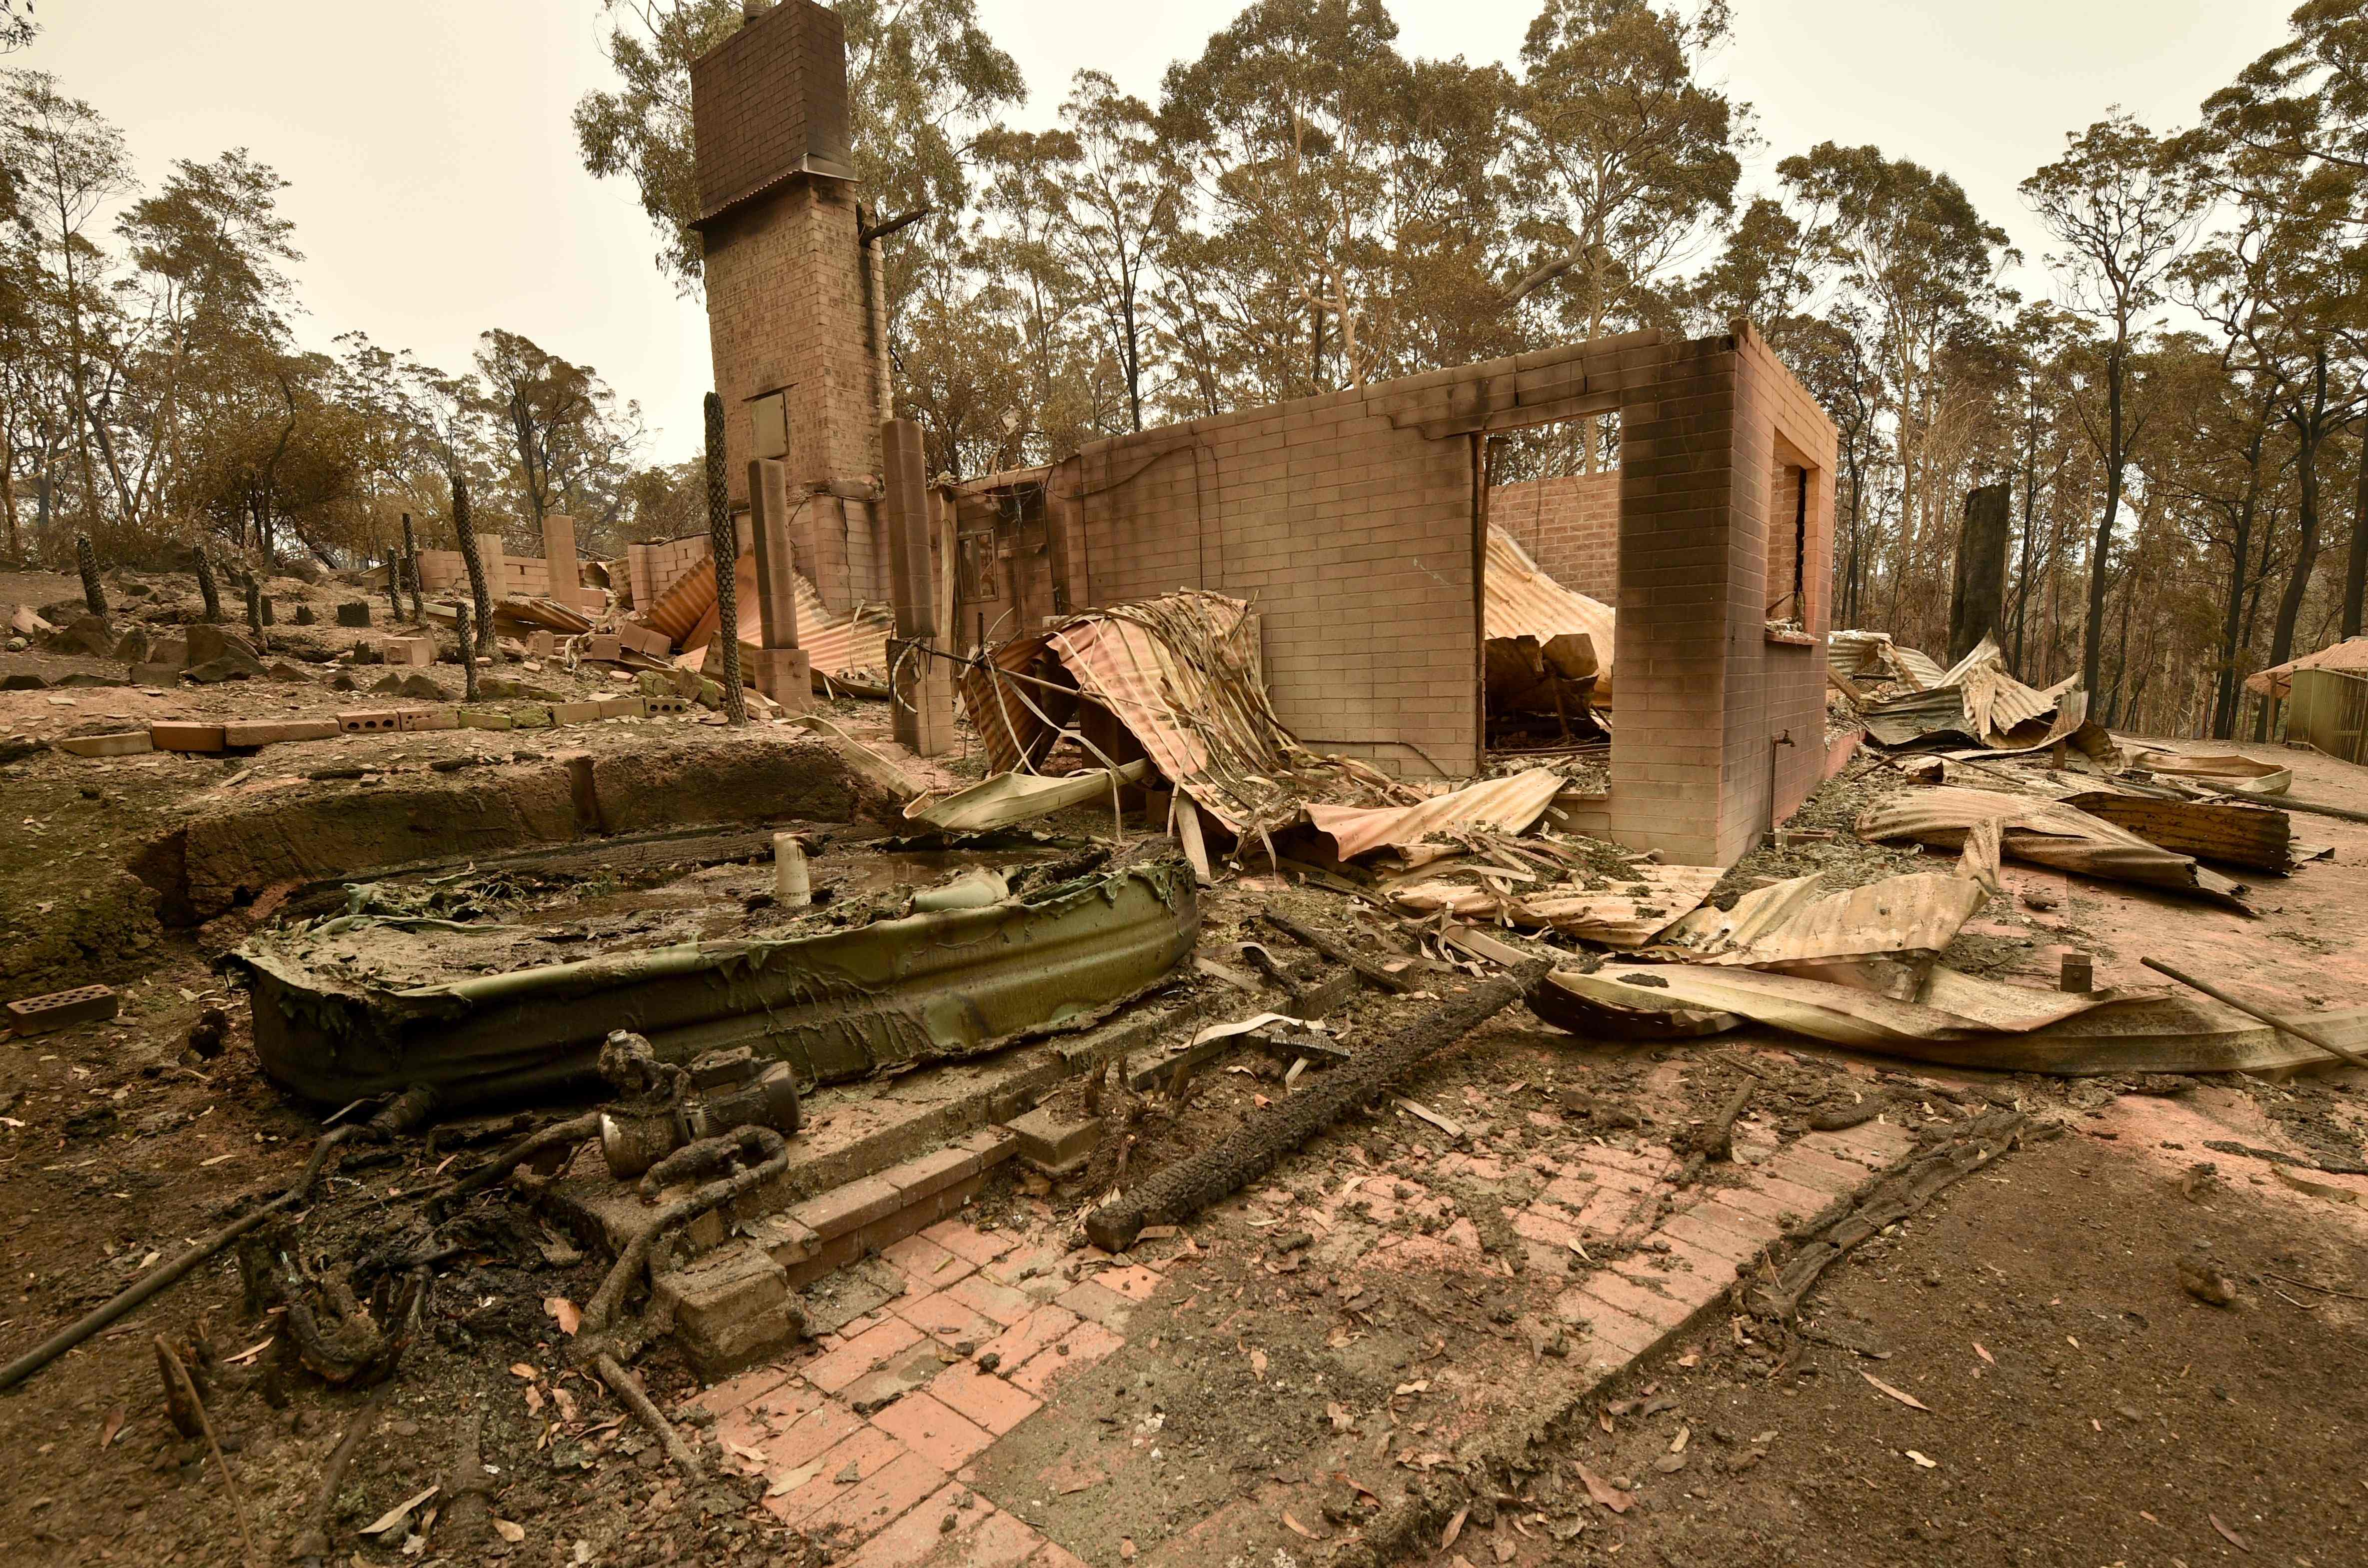 A home destroyed by fire in Bateman's Bay, where locals and tourists have been ordered to evacuate